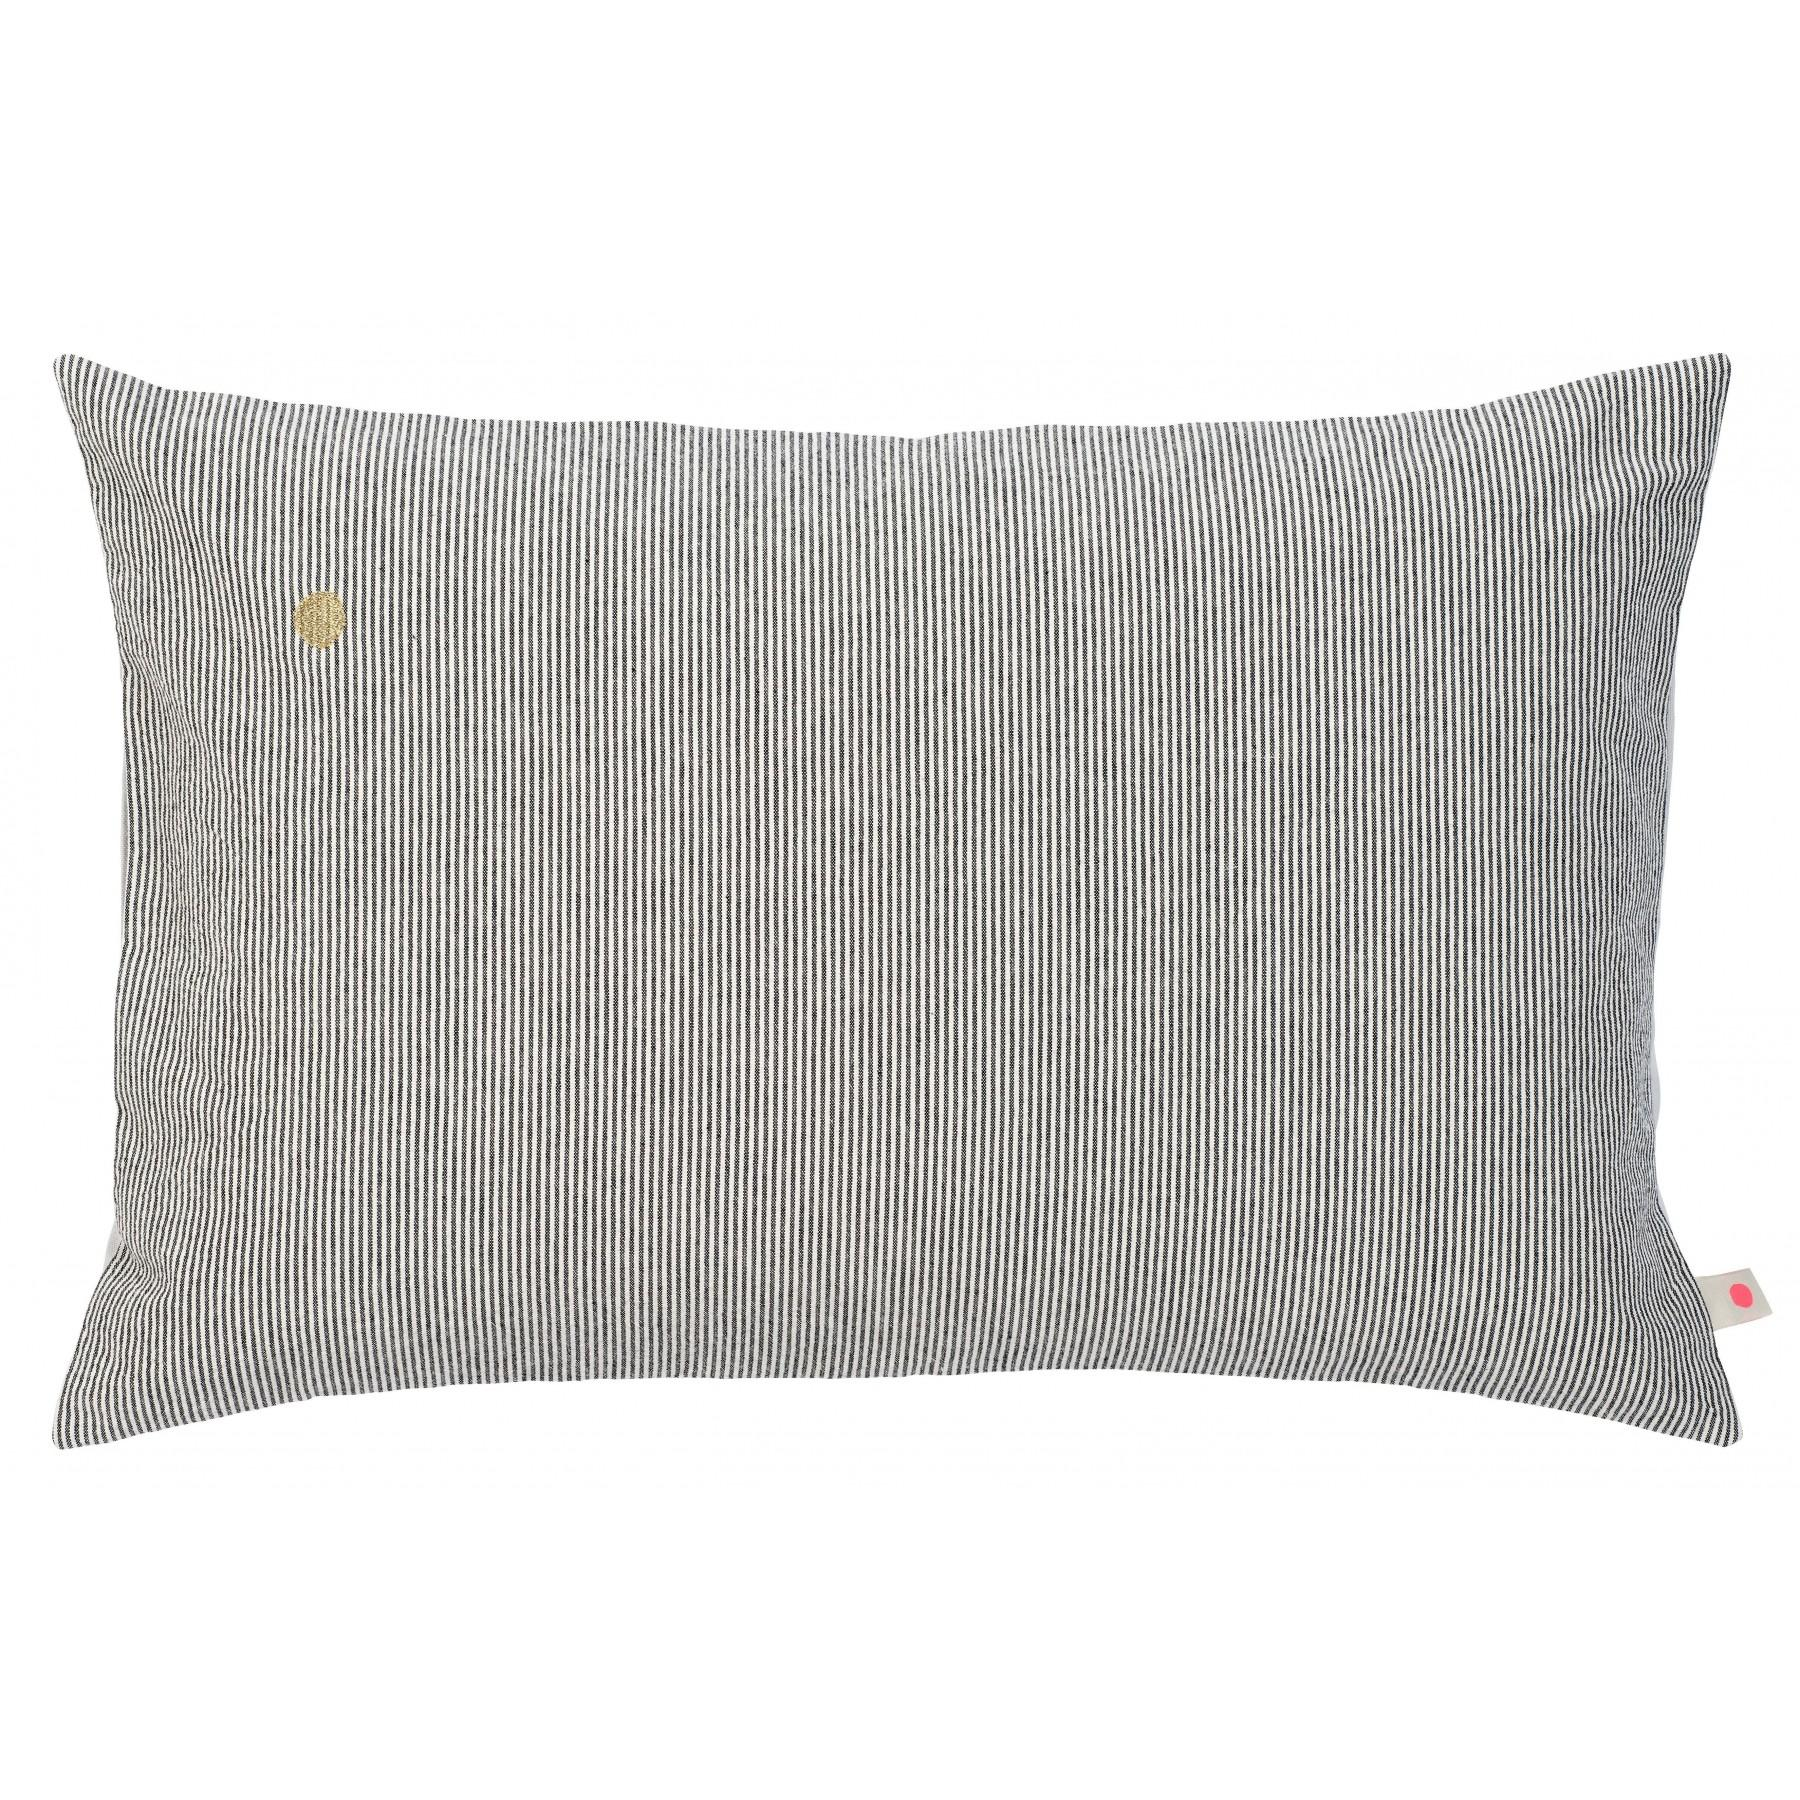 CUSHION COVER FINETTE CAVIAR 40